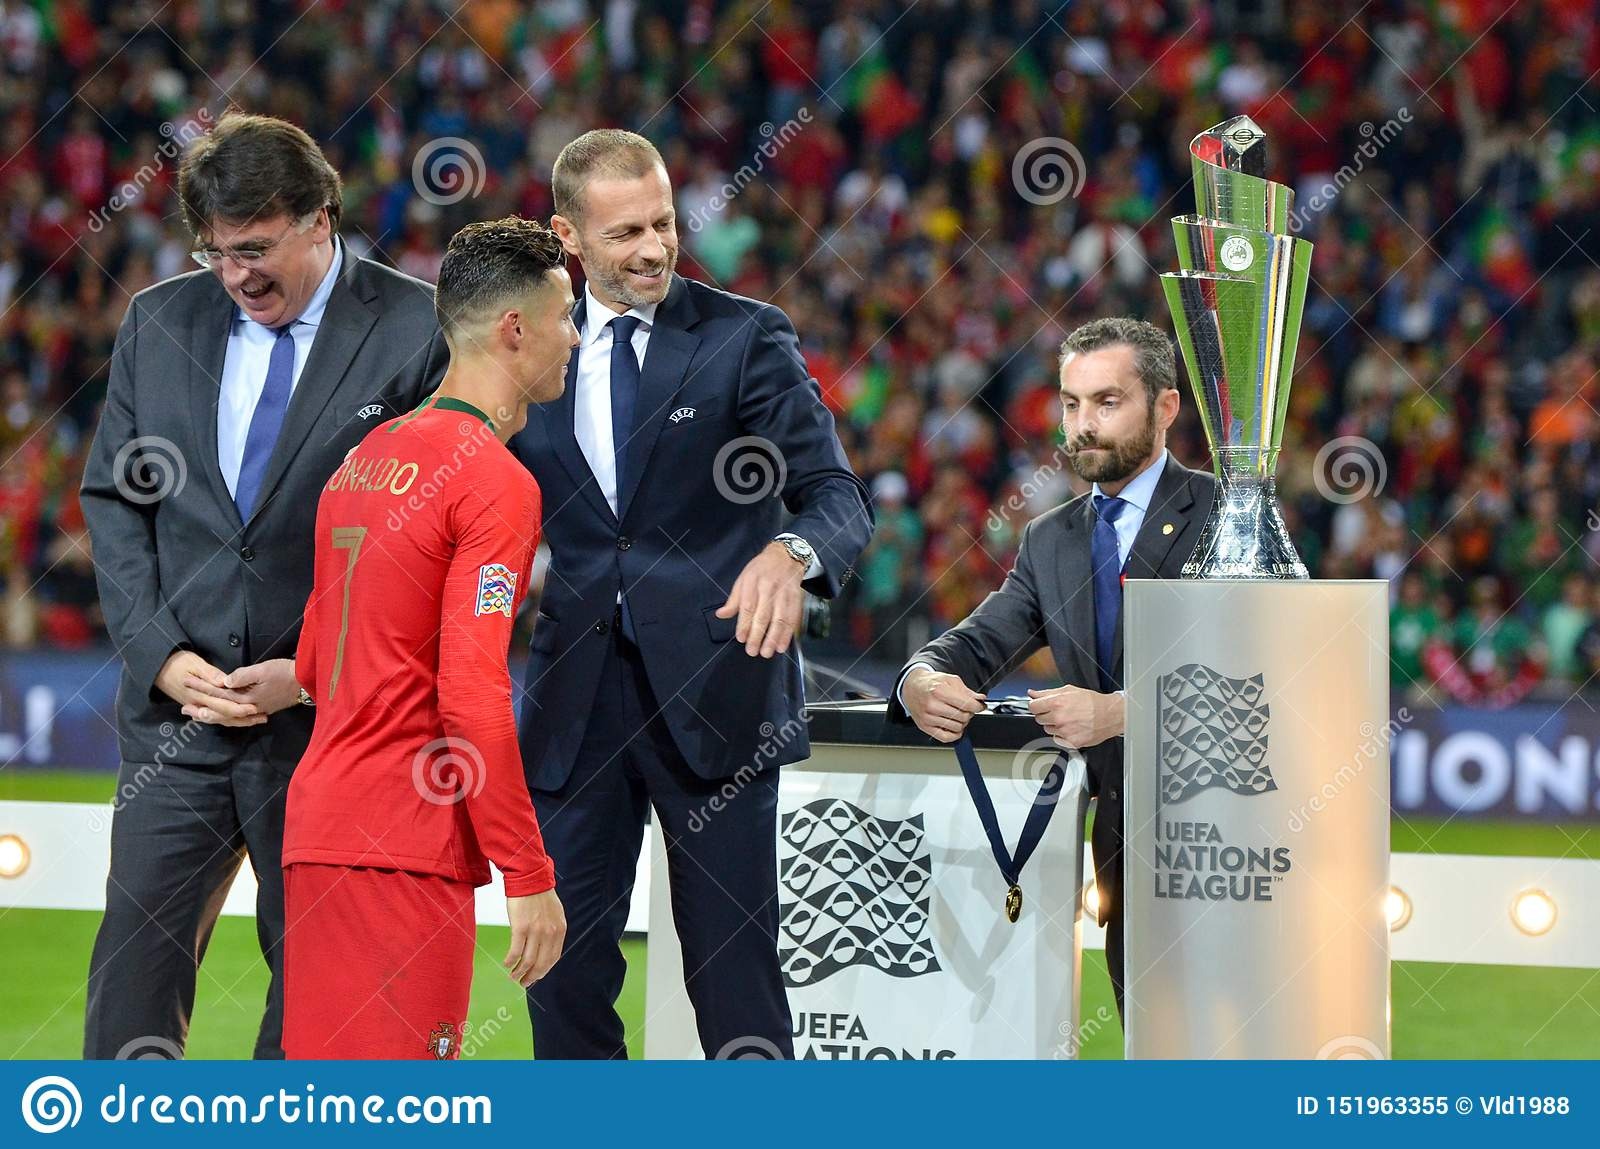 Porto Portuglal June 09 2019 Cristiano Ronaldo Receive Gold Medals During The Uefa Nations League Finals Match Between Editorial Image Image Of Game Grass 151963355